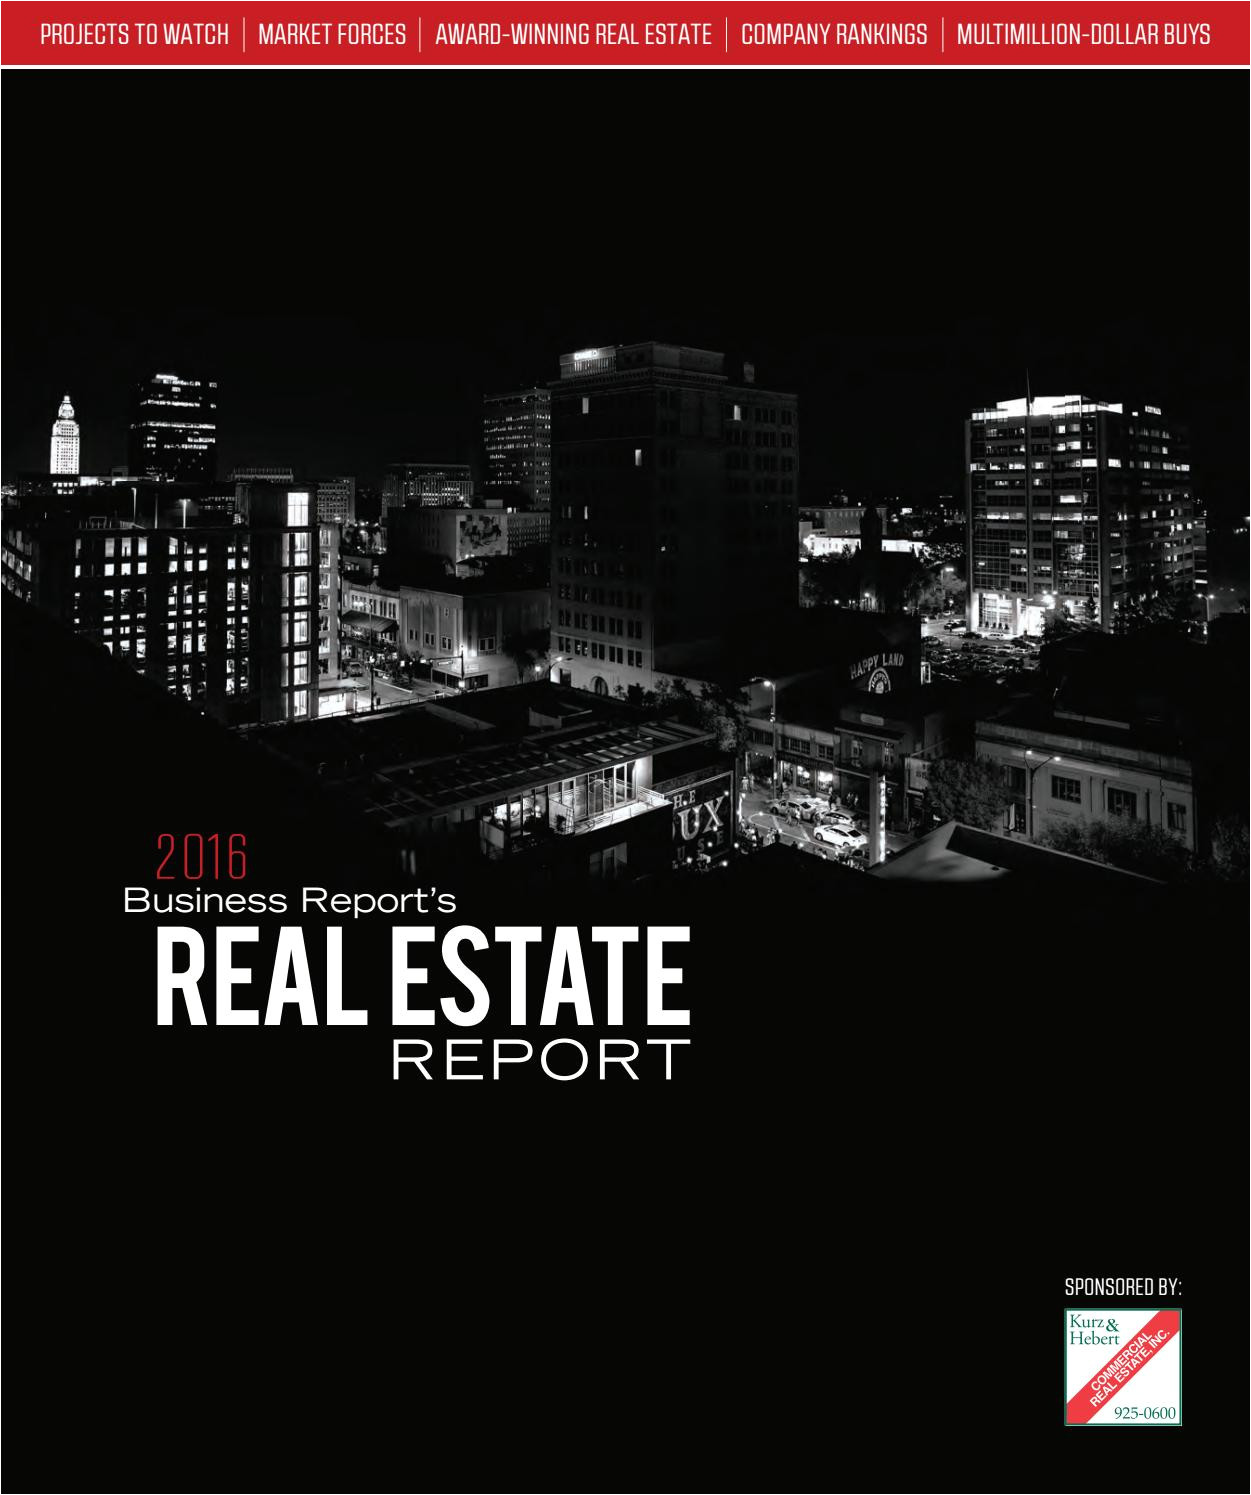 2016 baton rouge real estate report by baton rouge business report issuu